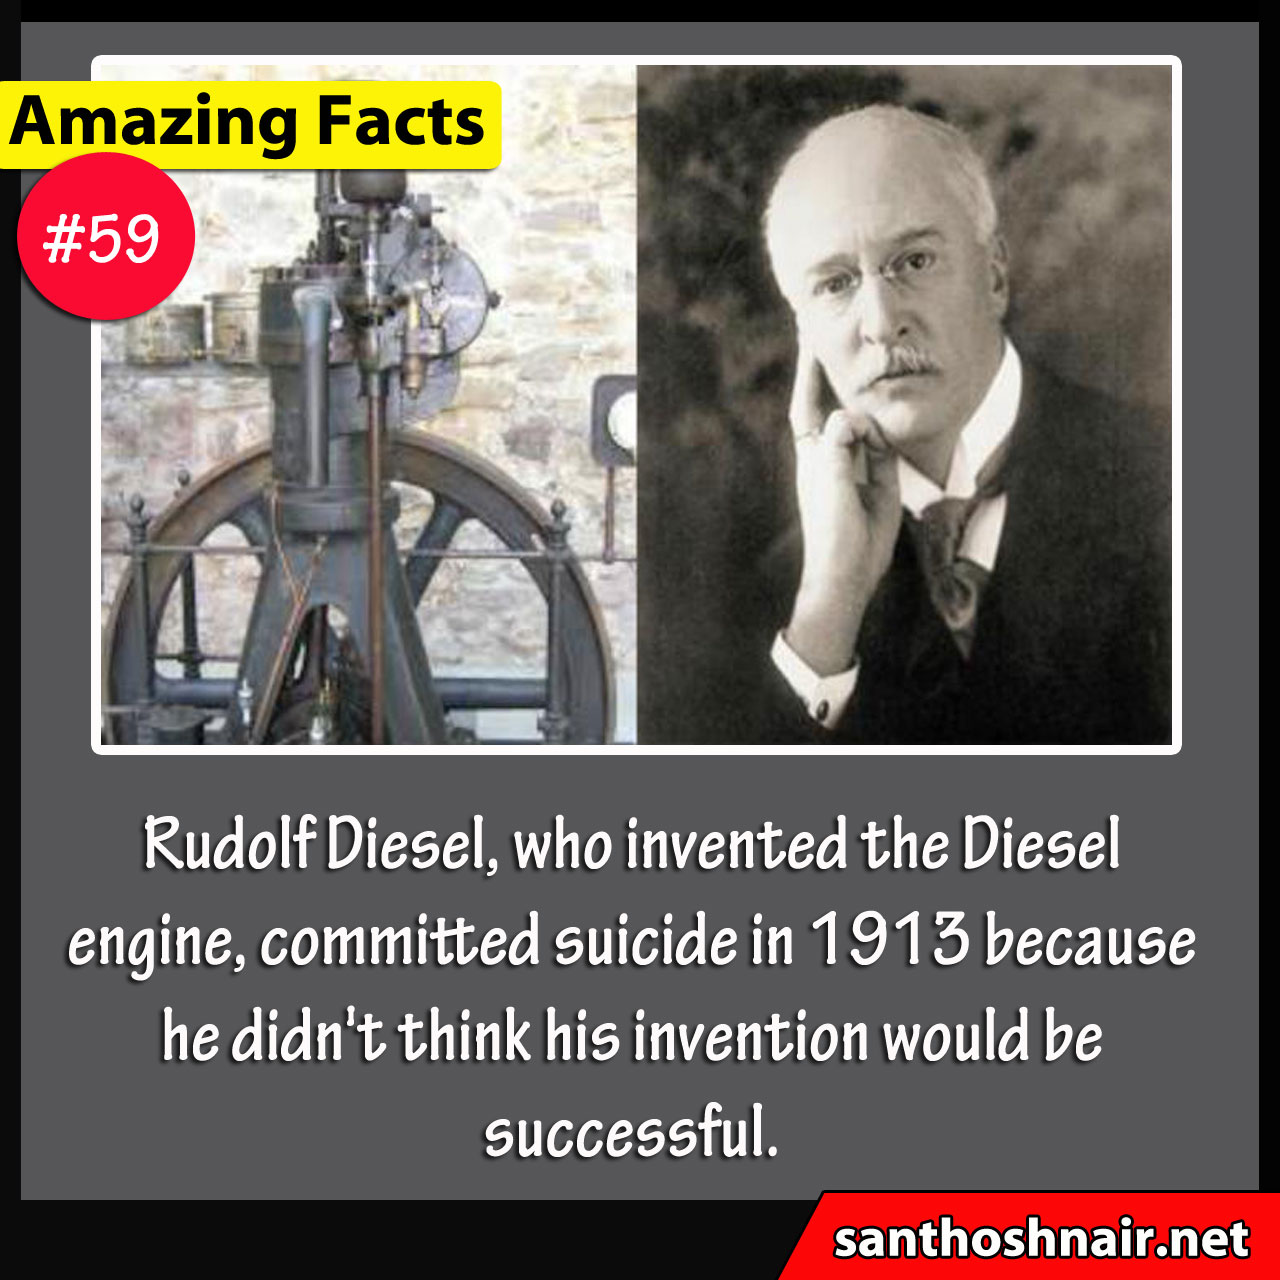 Amazing Facts #59 - Rudolf Diesel committed suicide